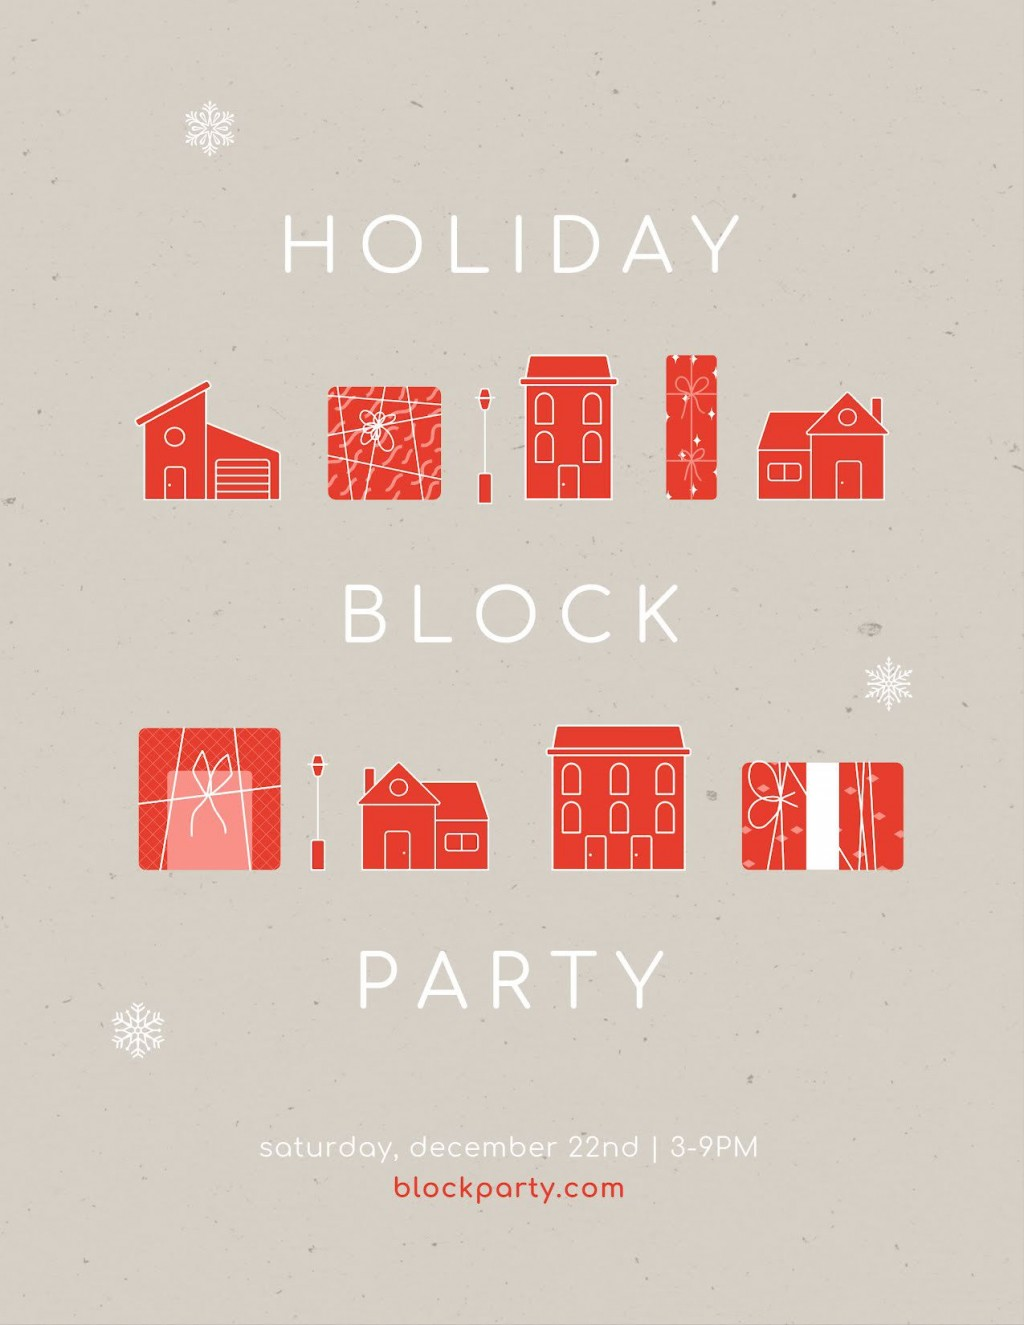 010 Simple Block Party Flyer Template Picture  Templates FreeLarge